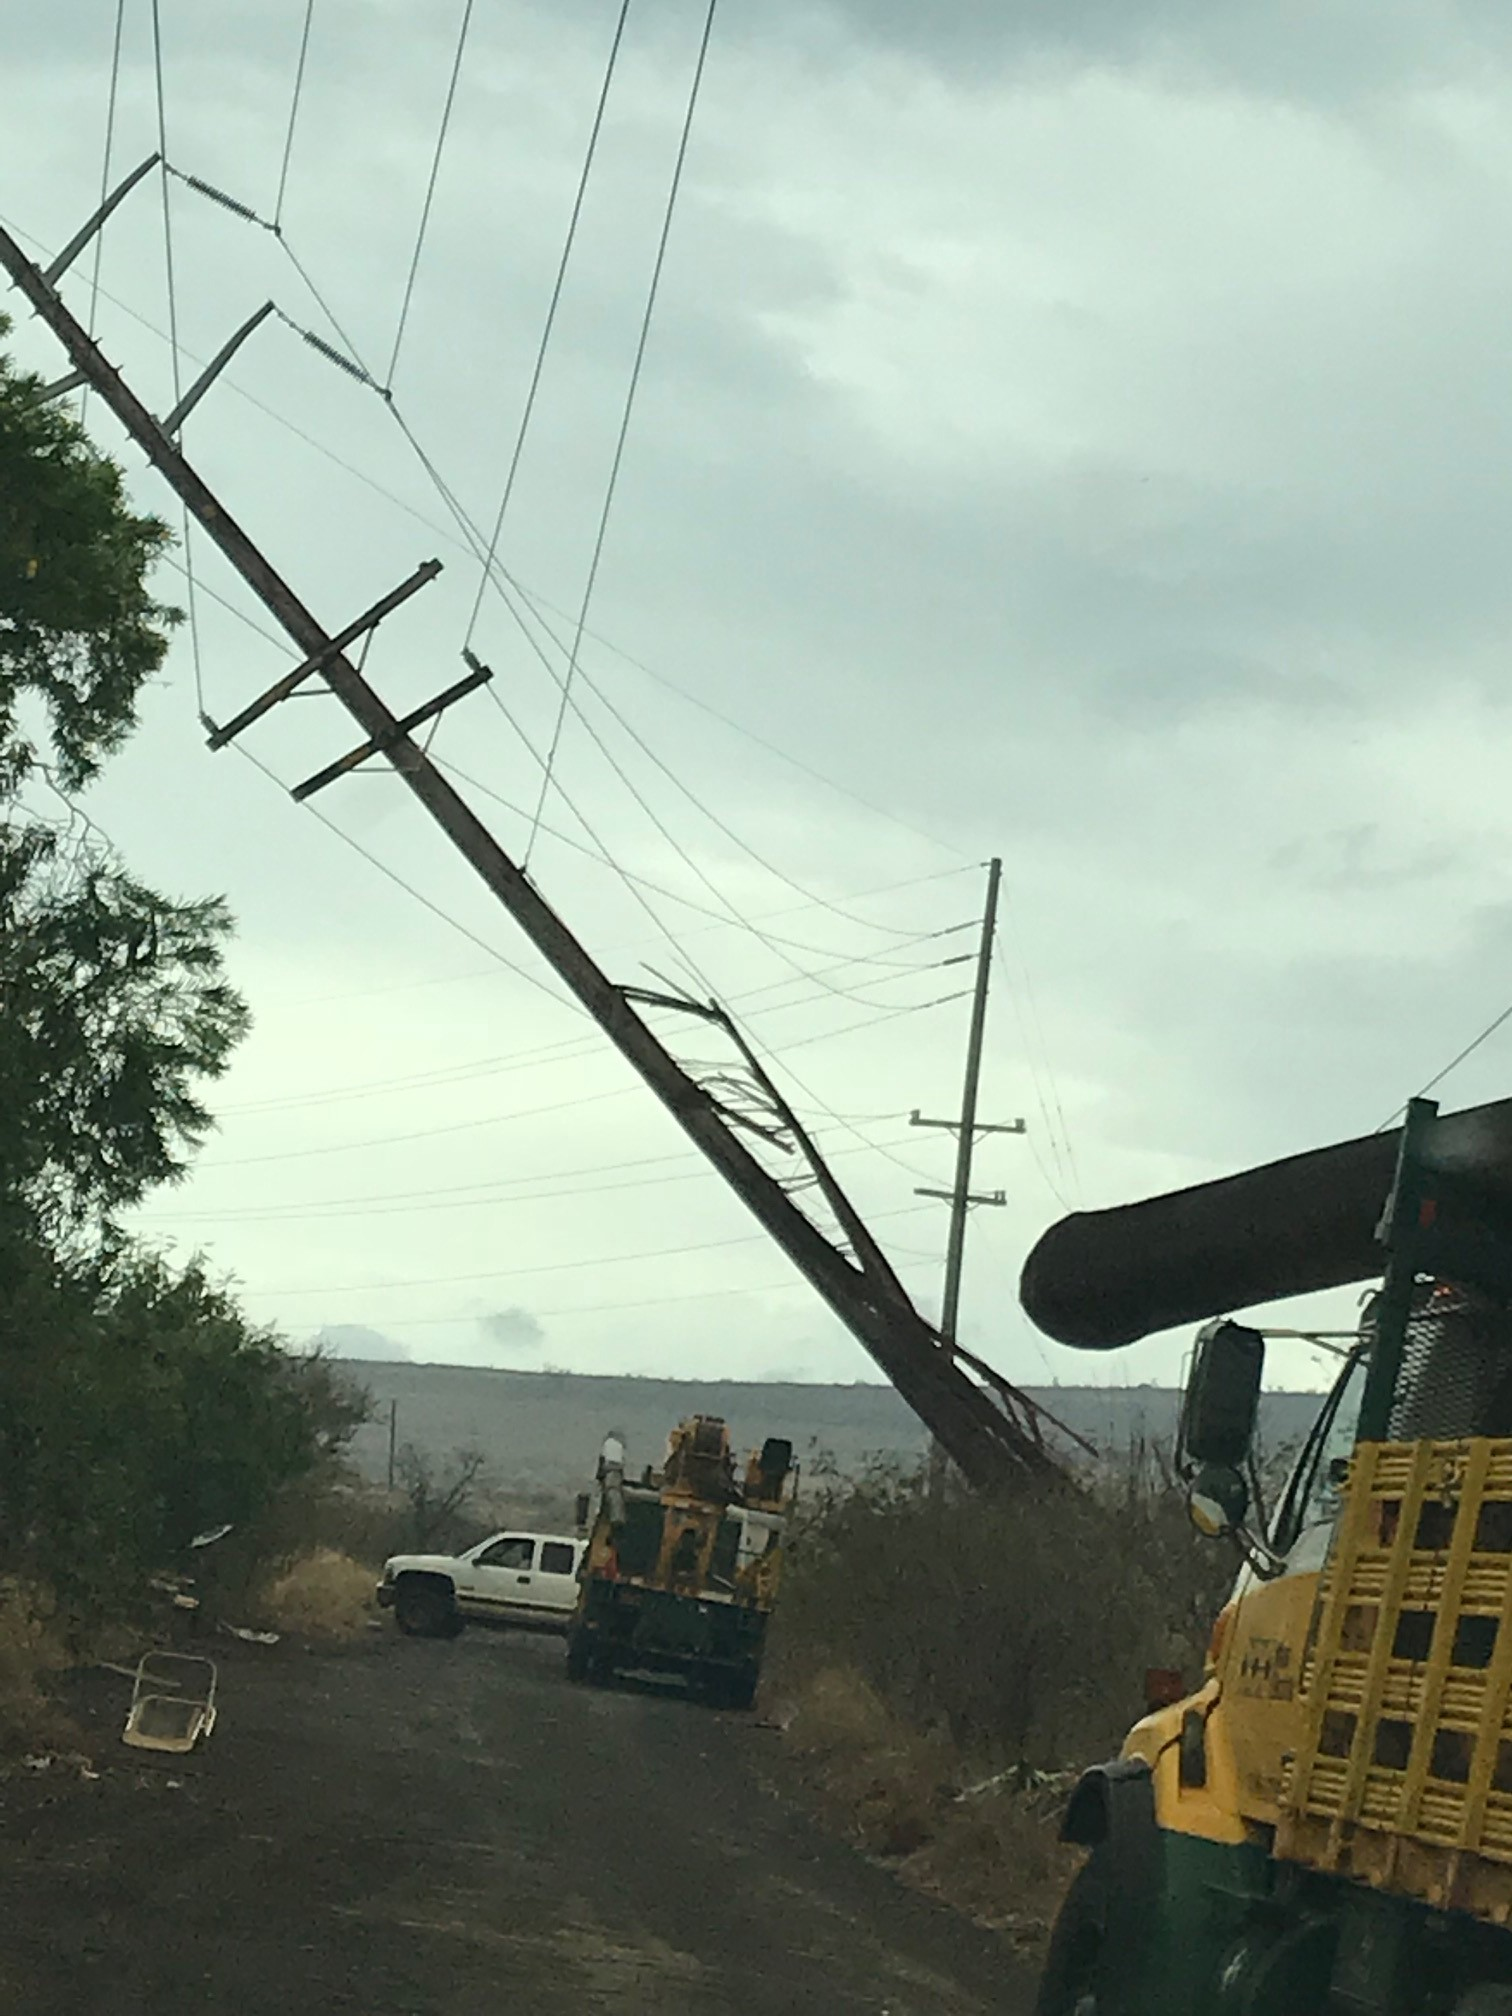 West Maui Electric Customers Asked to Prepare for Extended Outage